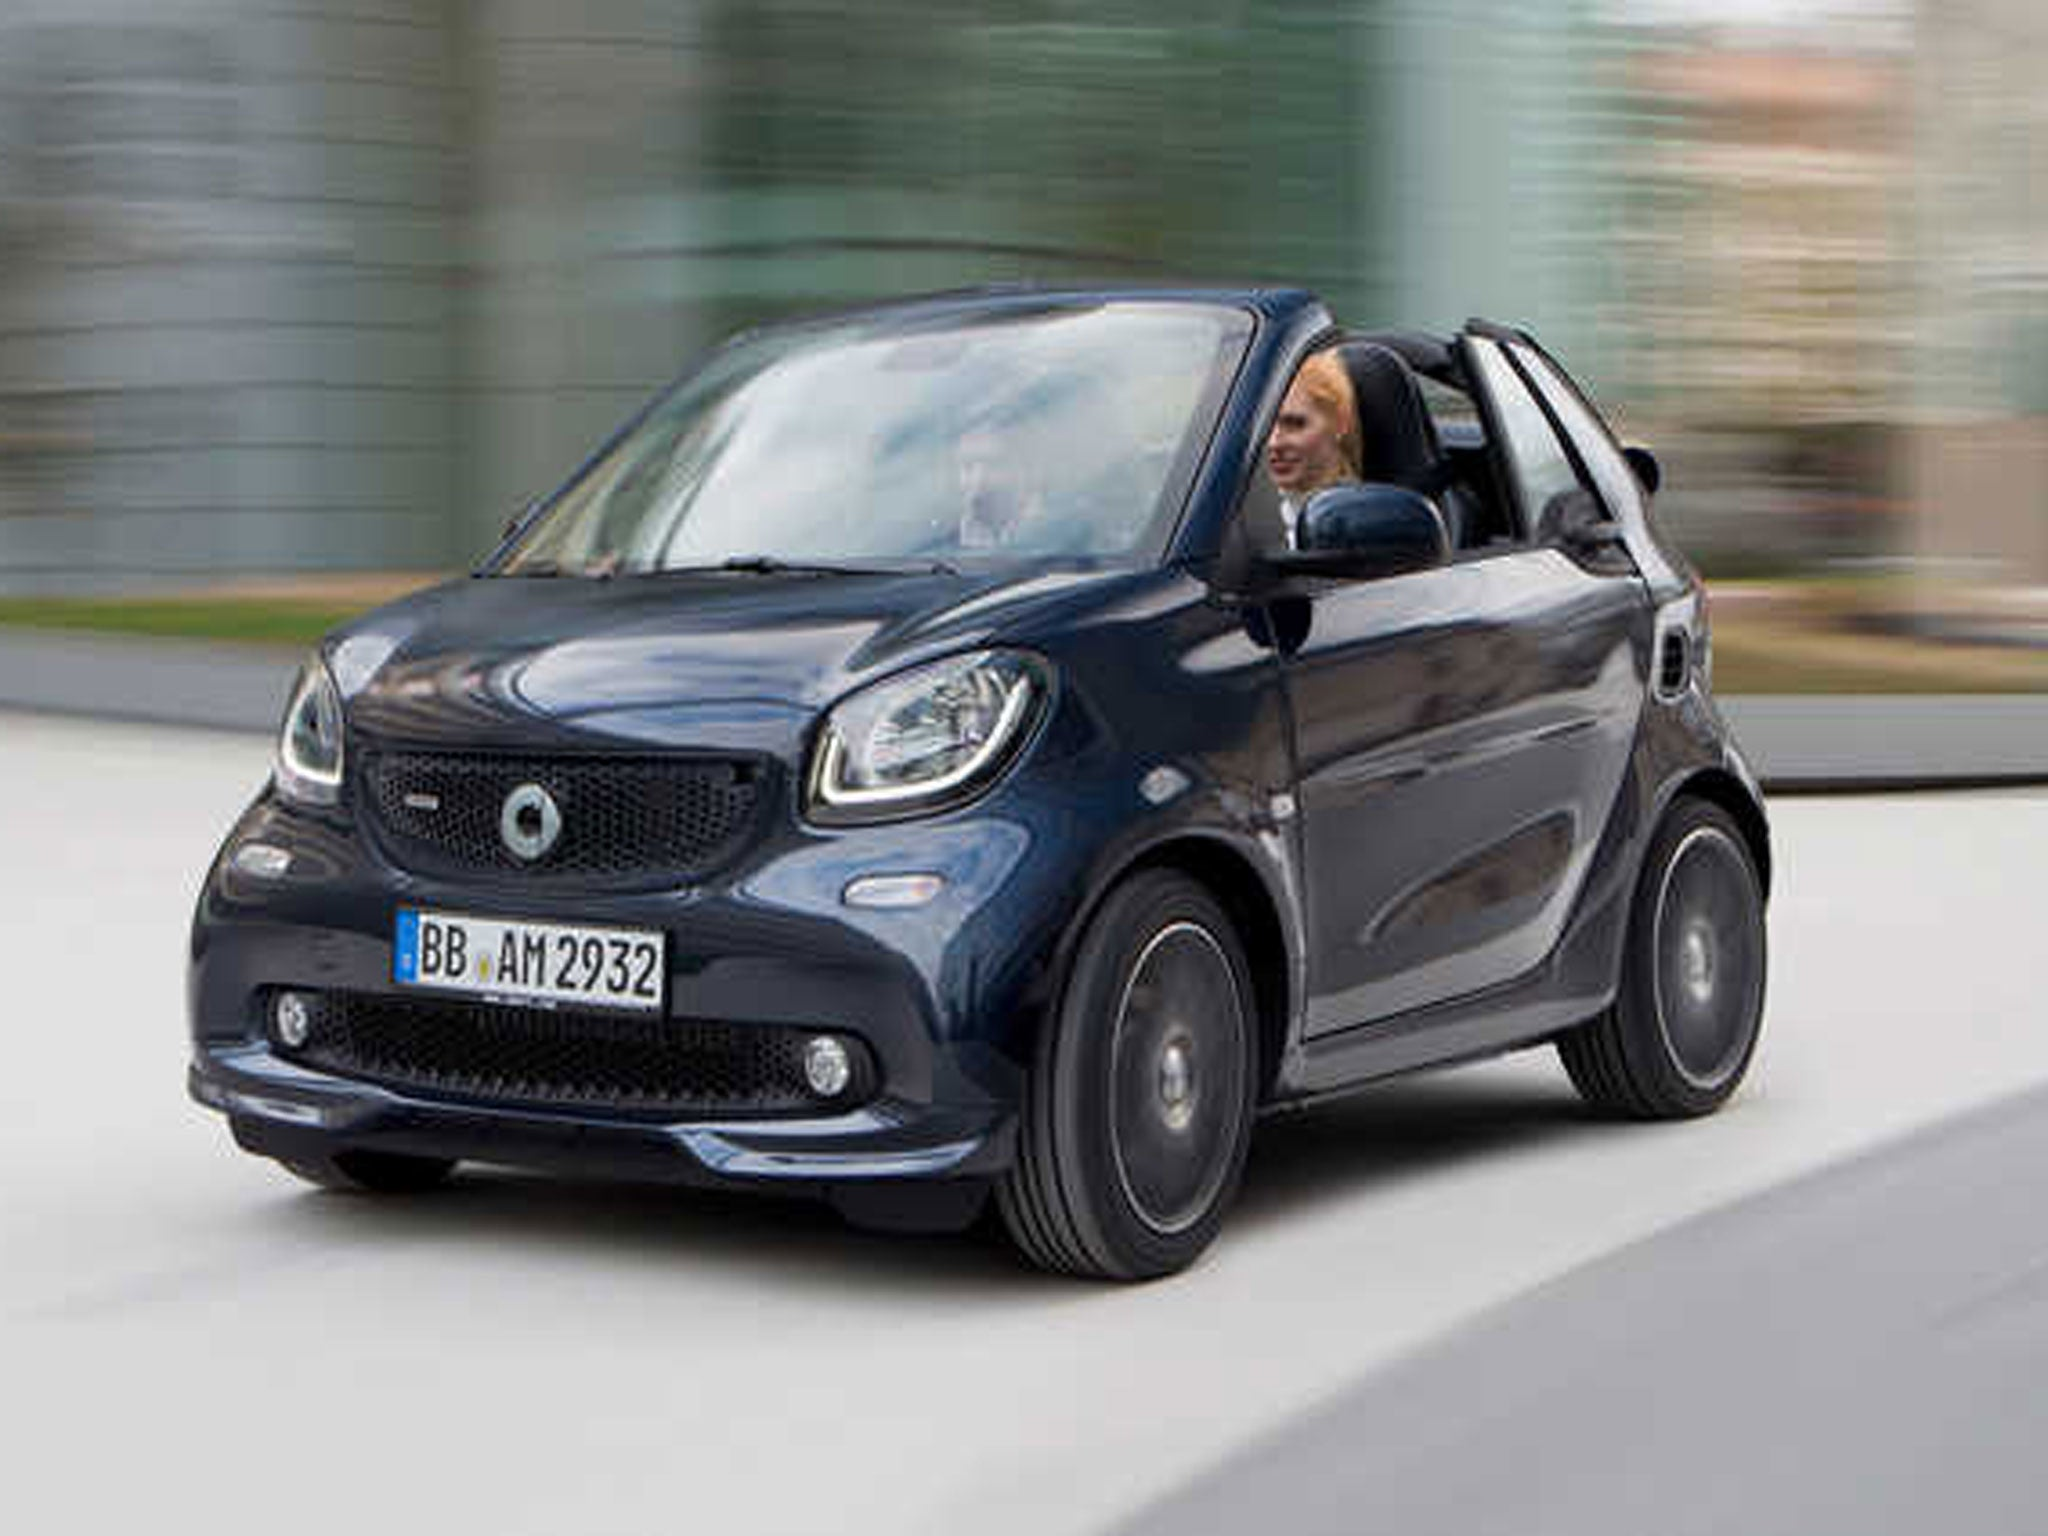 smart fortwo and forfour get brabus makeover with more power and style the independent. Black Bedroom Furniture Sets. Home Design Ideas